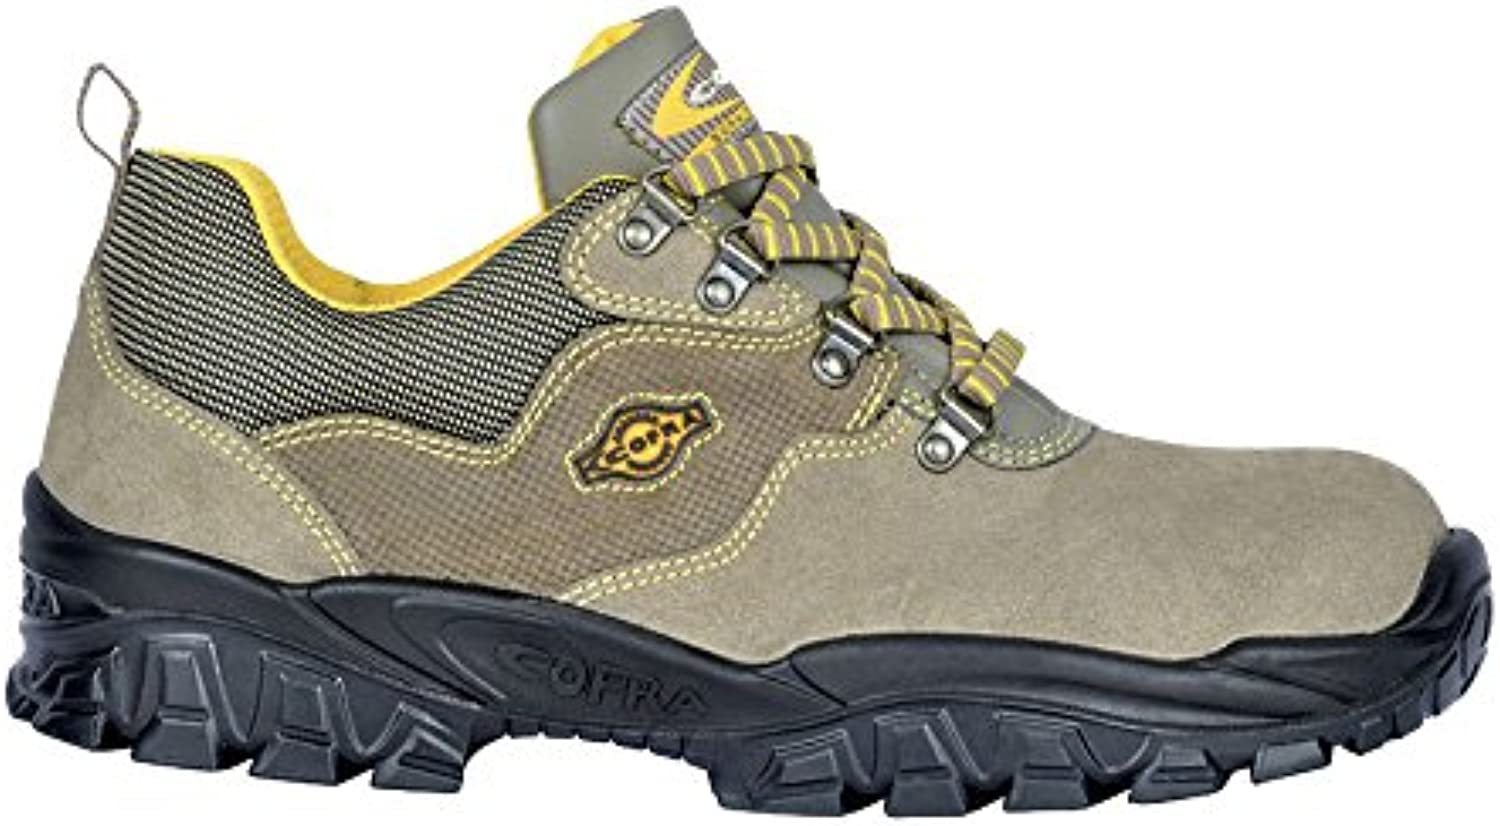 Cofra NT150-000.W48 Work shoes,  New Adige , Size 13, Brown - EN safety certified